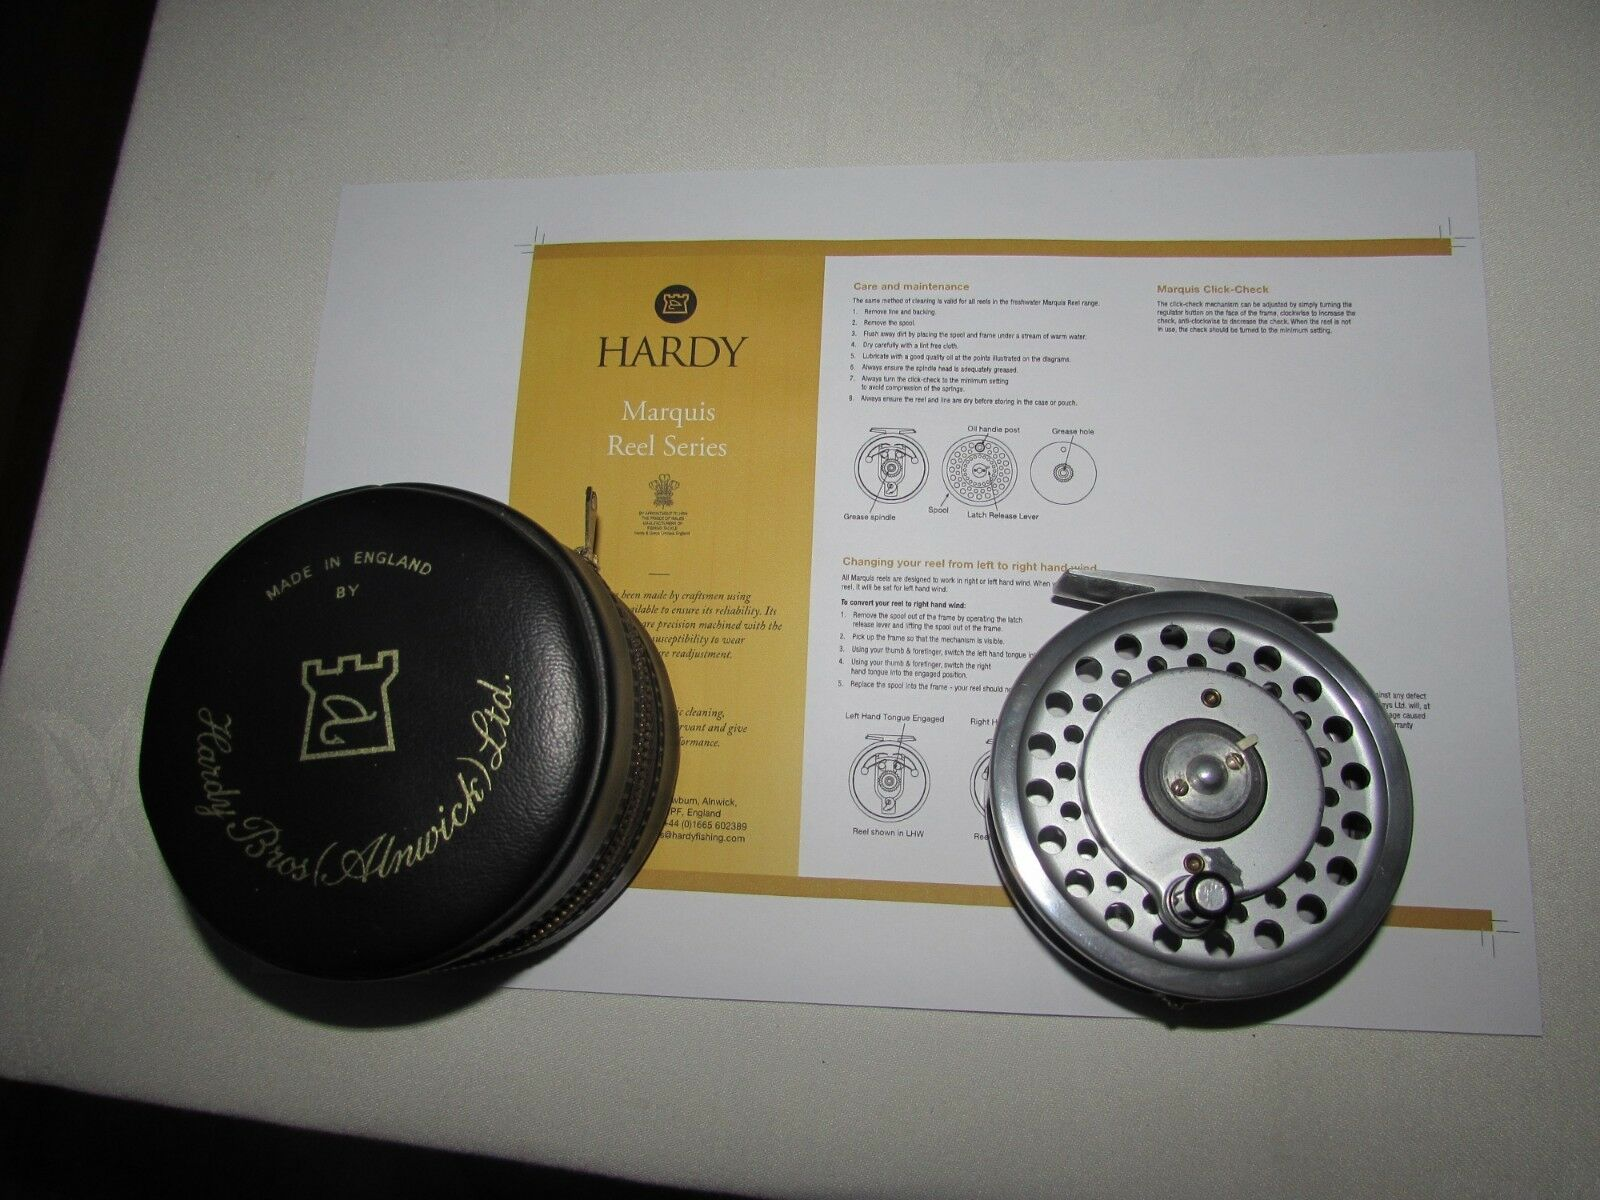 Excellent vintage hardy marquis 6 multiplier trout fly fishing  reel 3.25  etc  cheap and top quality